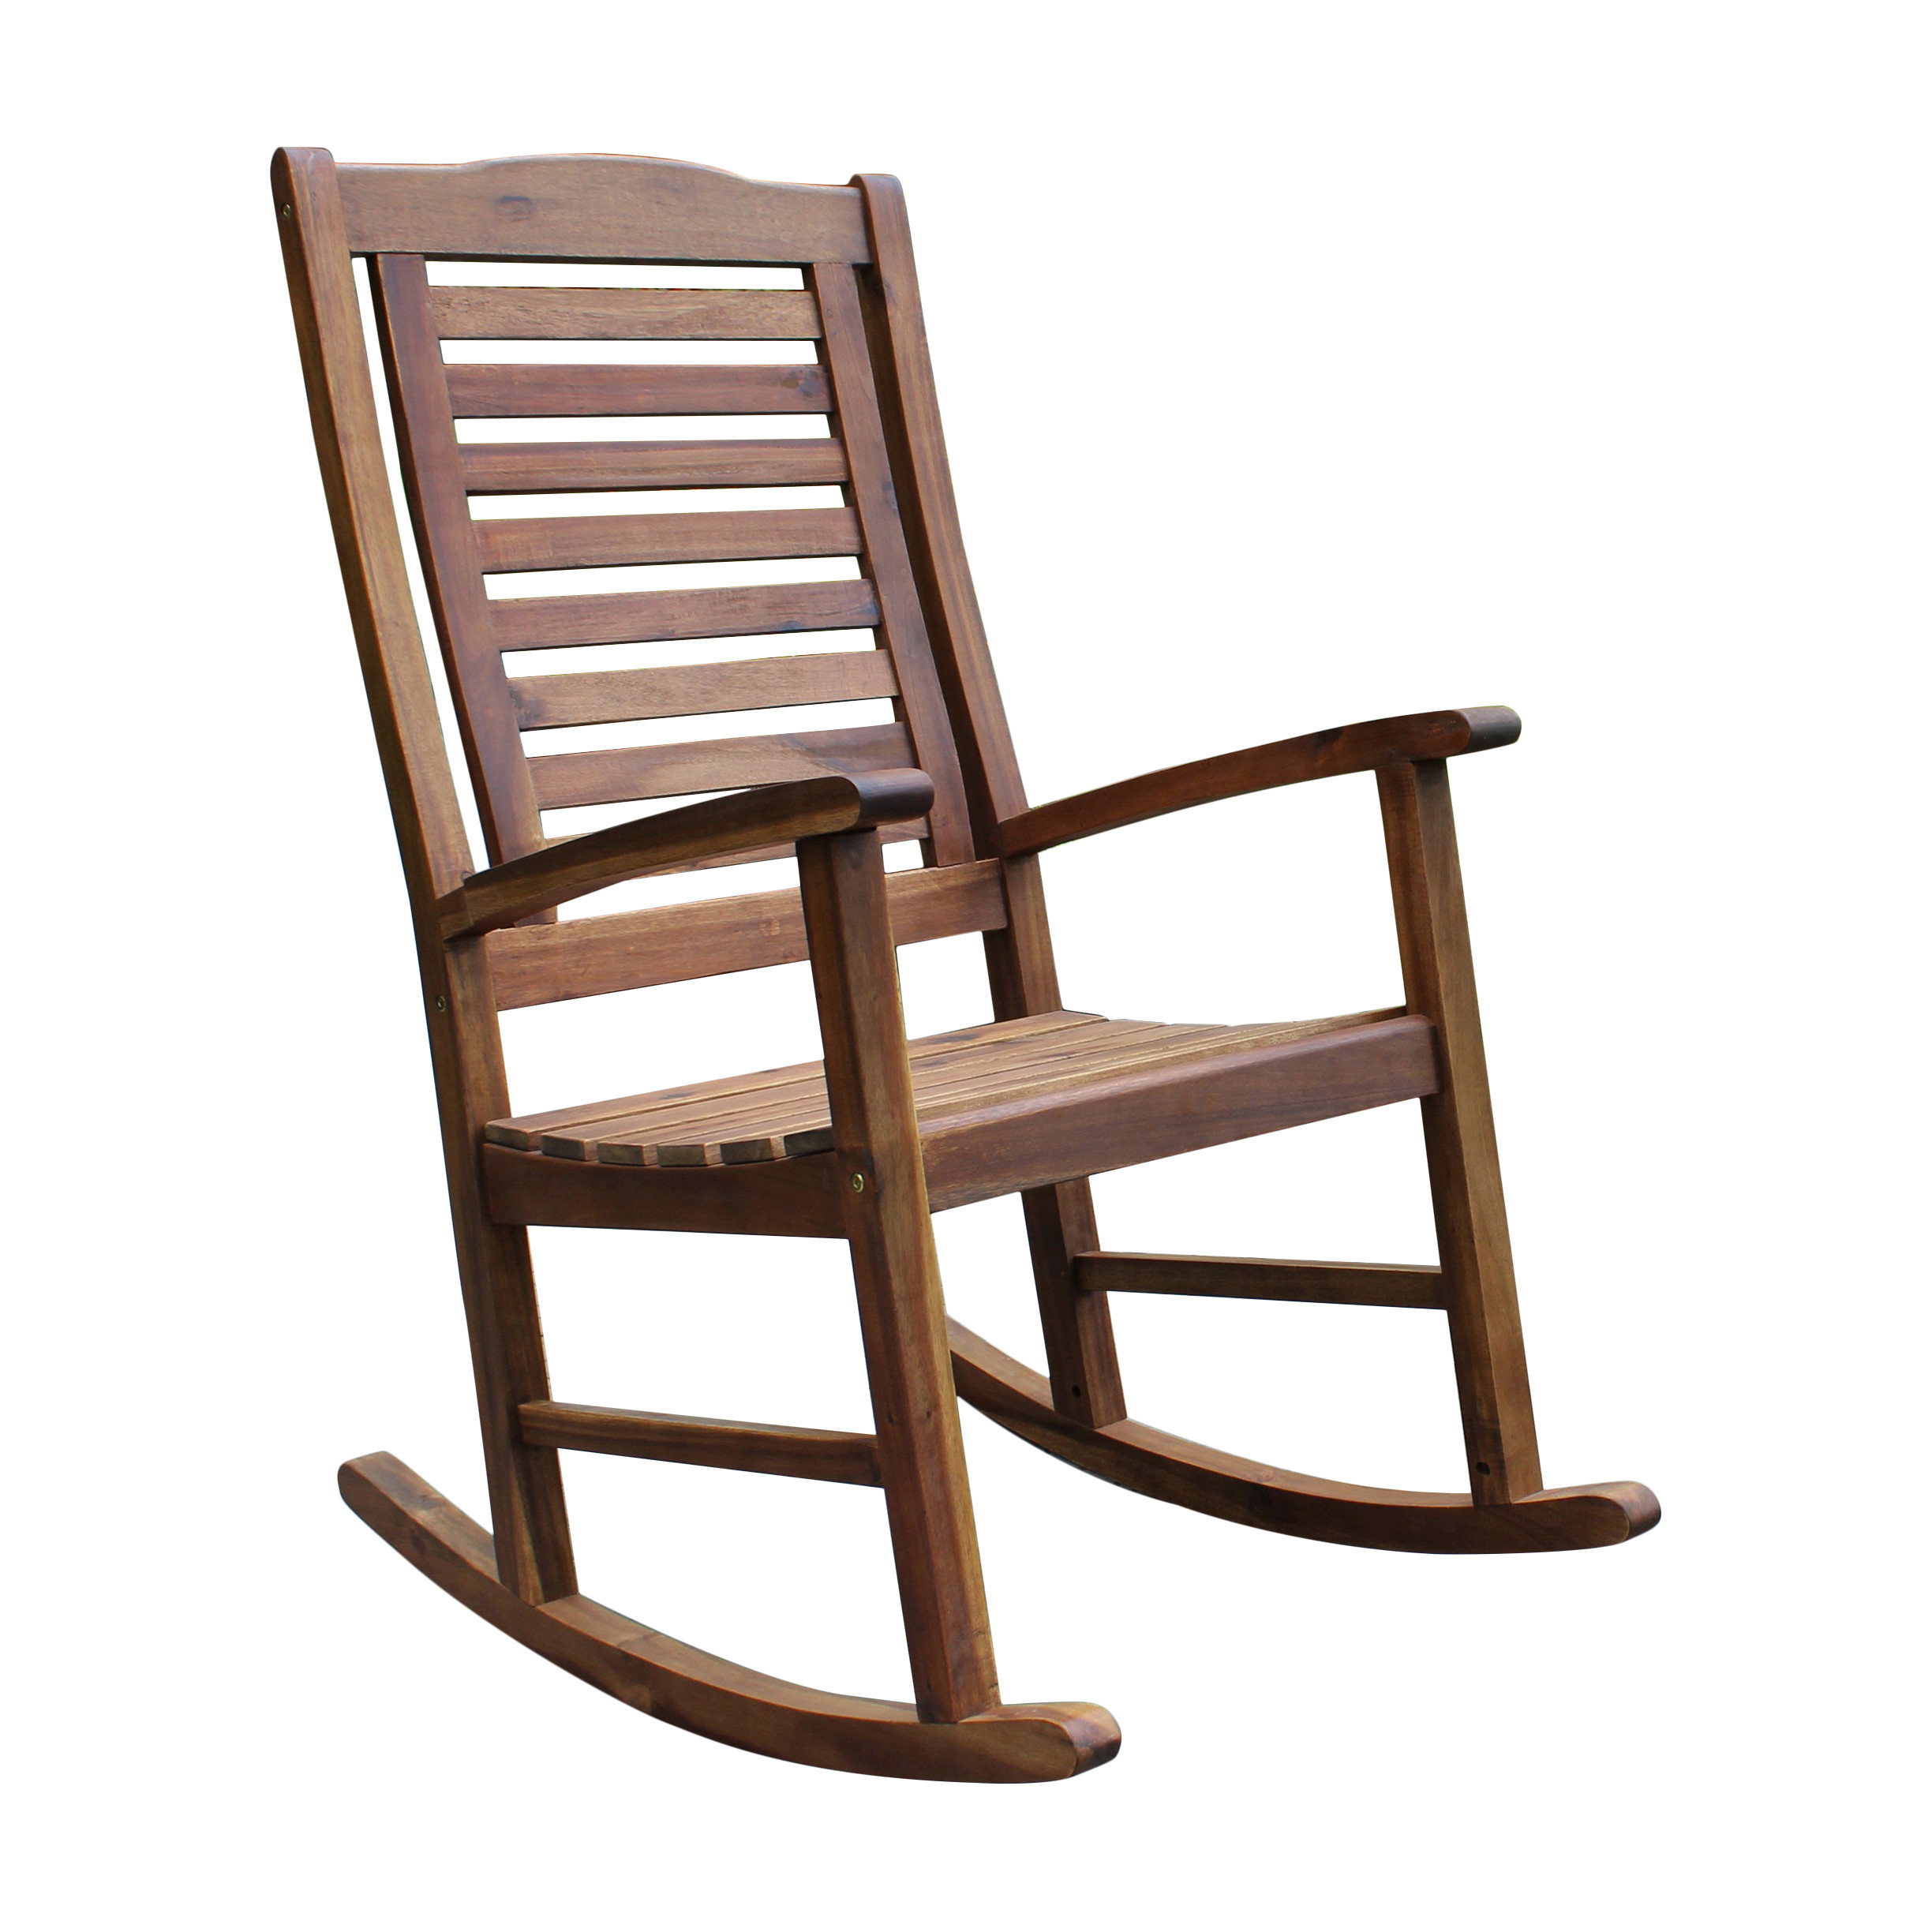 Best ideas about Outdoor Rocking Chairs . Save or Pin Breakwater Bay Sandy Point Contemporary Outdoor Rocking Now.